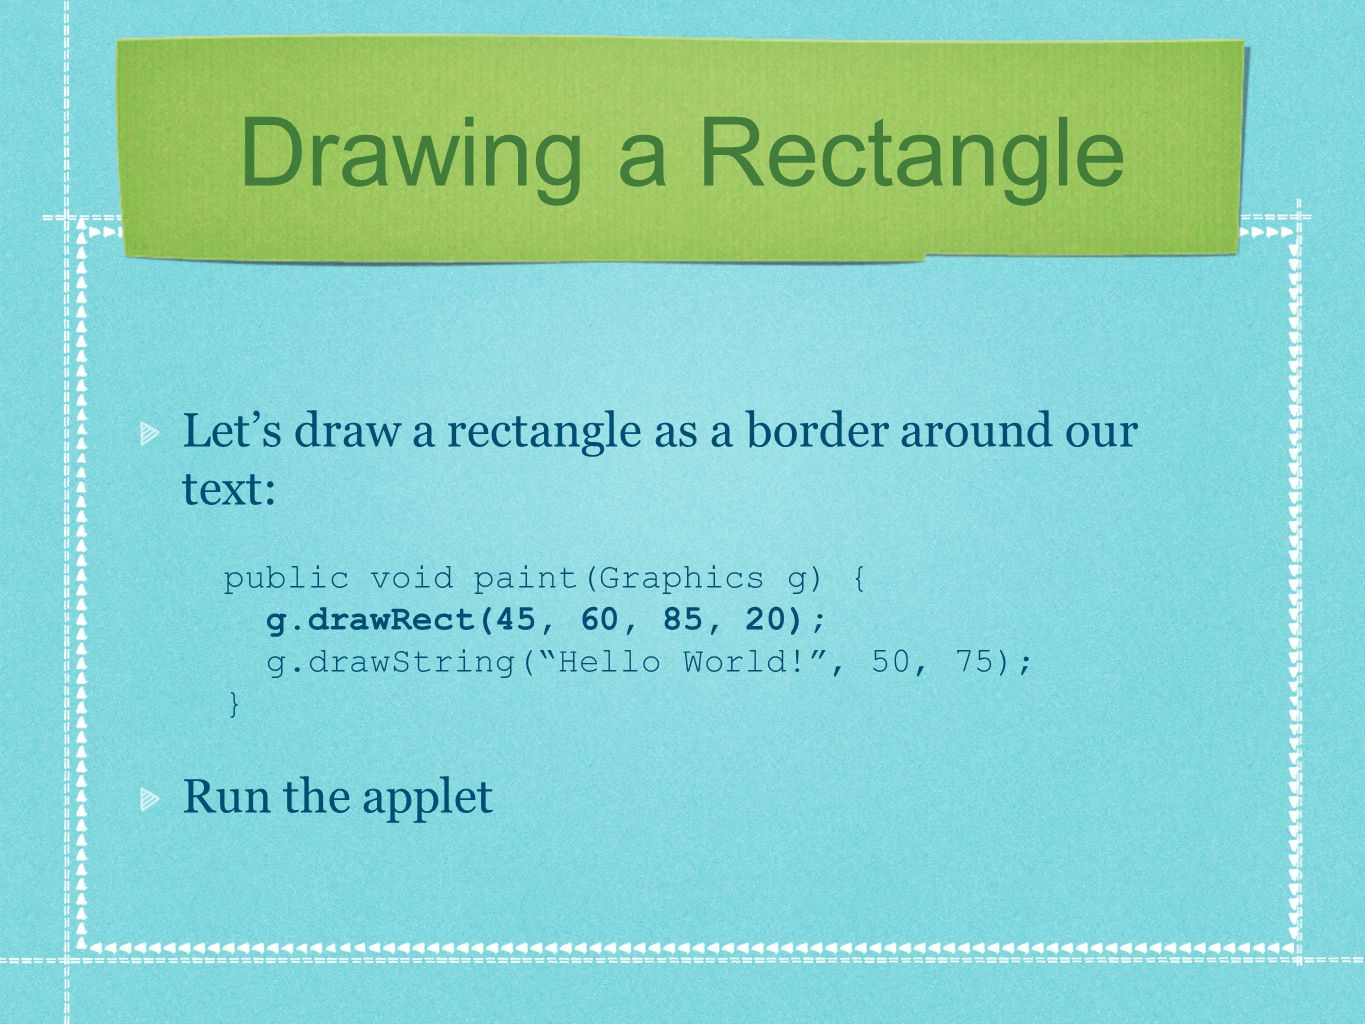 "Drawing a Rectangle Let's draw a rectangle as a border around our text: public void paint(Graphics g) { g.drawRect(45, 60, 85, 20); g.drawString(""Hell"